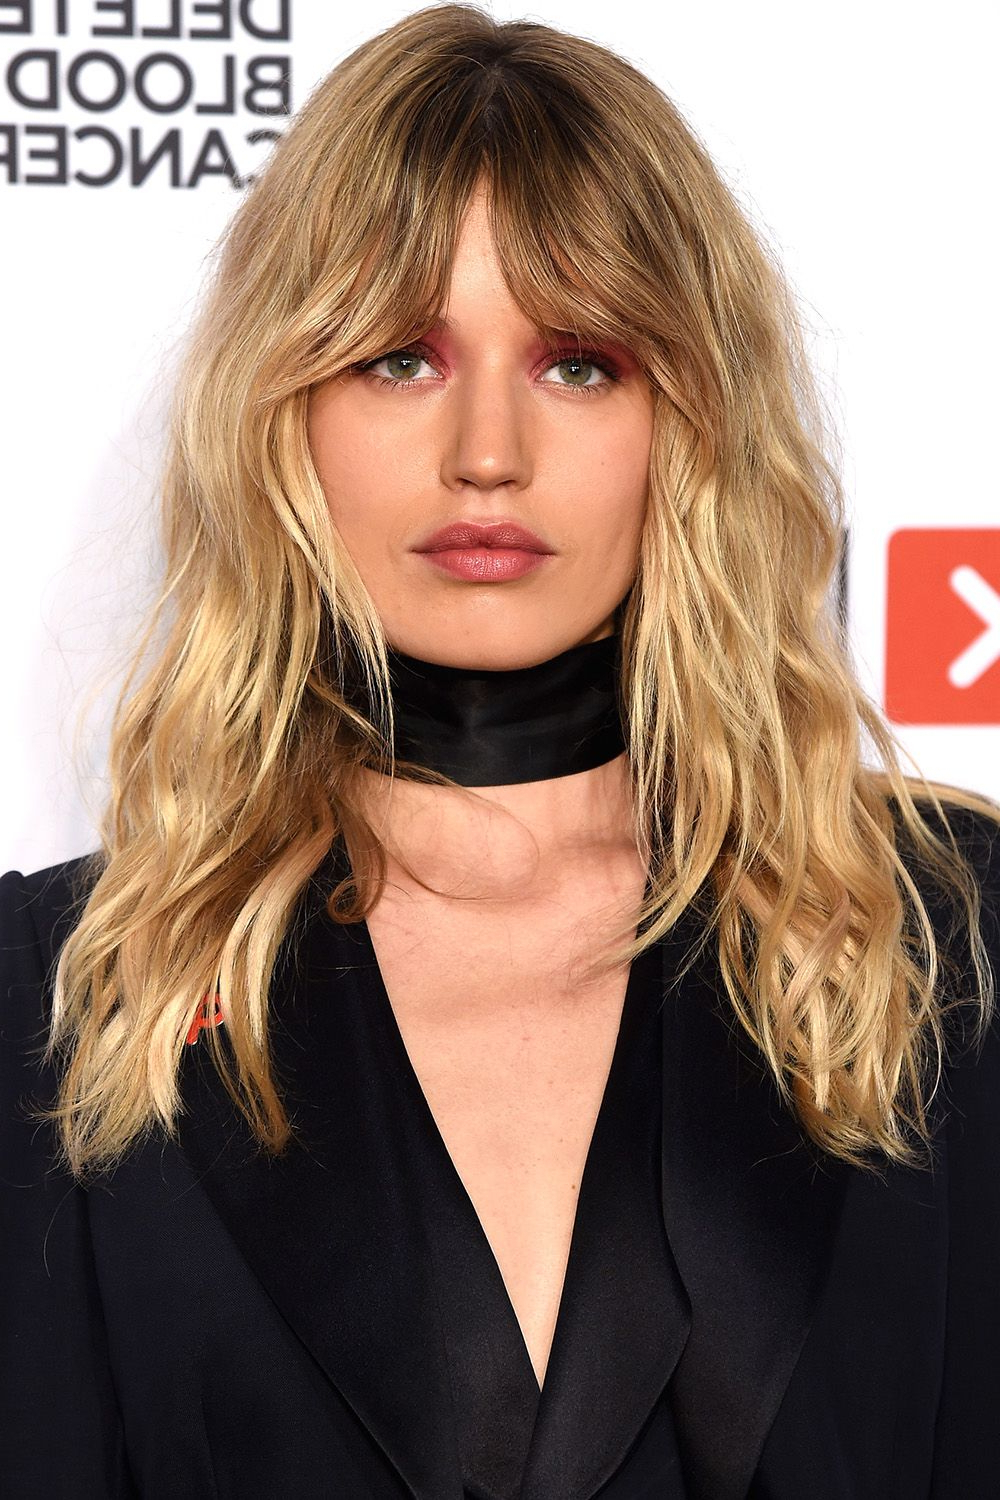 40 Best Medium Hairstyles – Celebrities With Shoulder Length Haircuts In Preferred Medium Hairstyles For Petite Faces (Gallery 16 of 20)